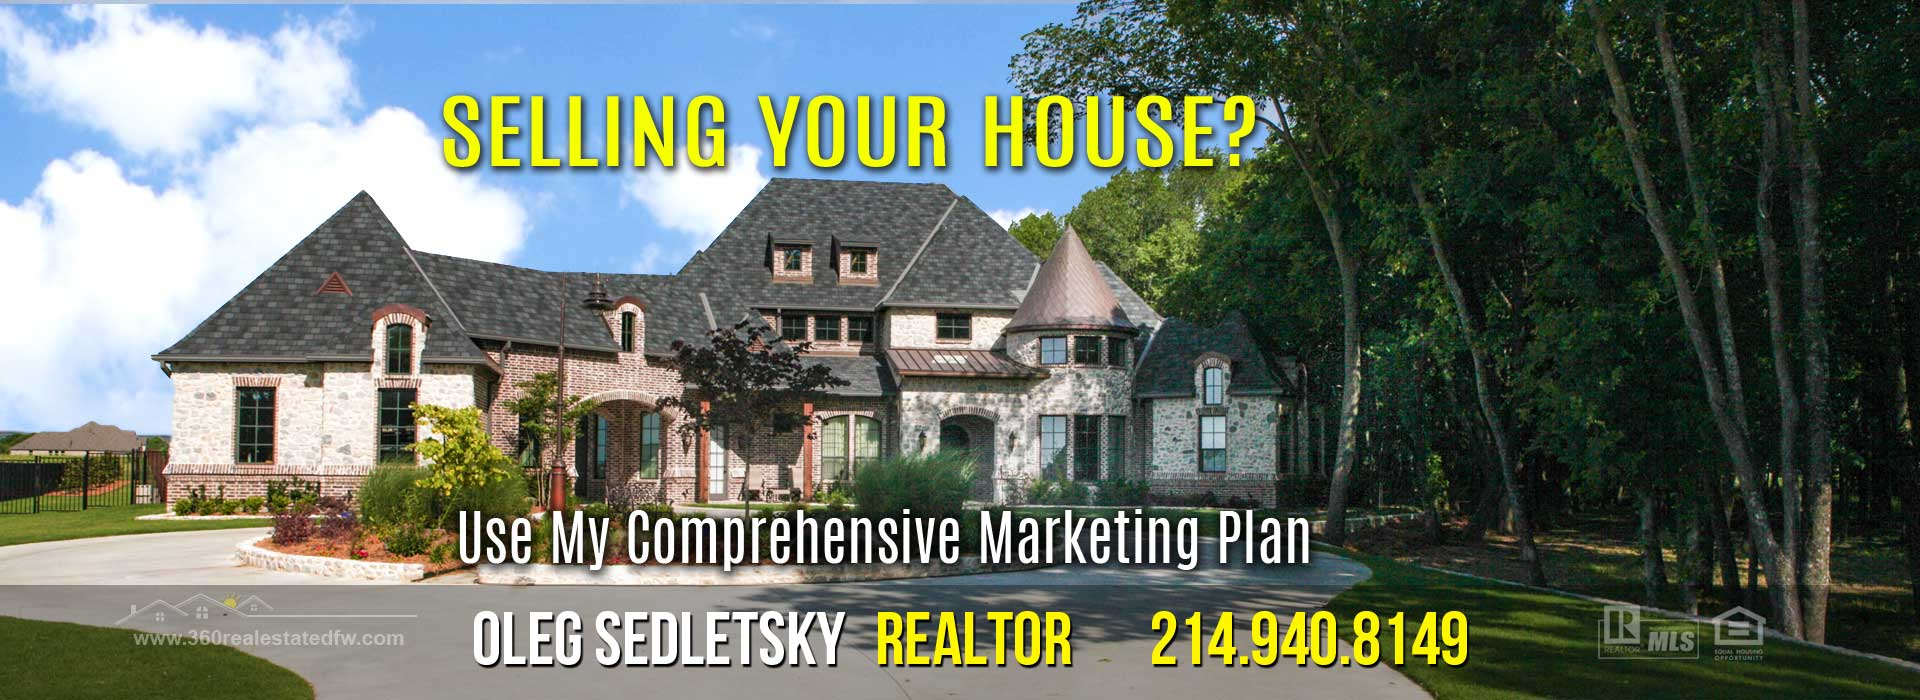 Dallas-Fort Worth Realtor - 214.940.8149 - Offering Unique Marketing Solutions For Selling Your House in the DFW Area